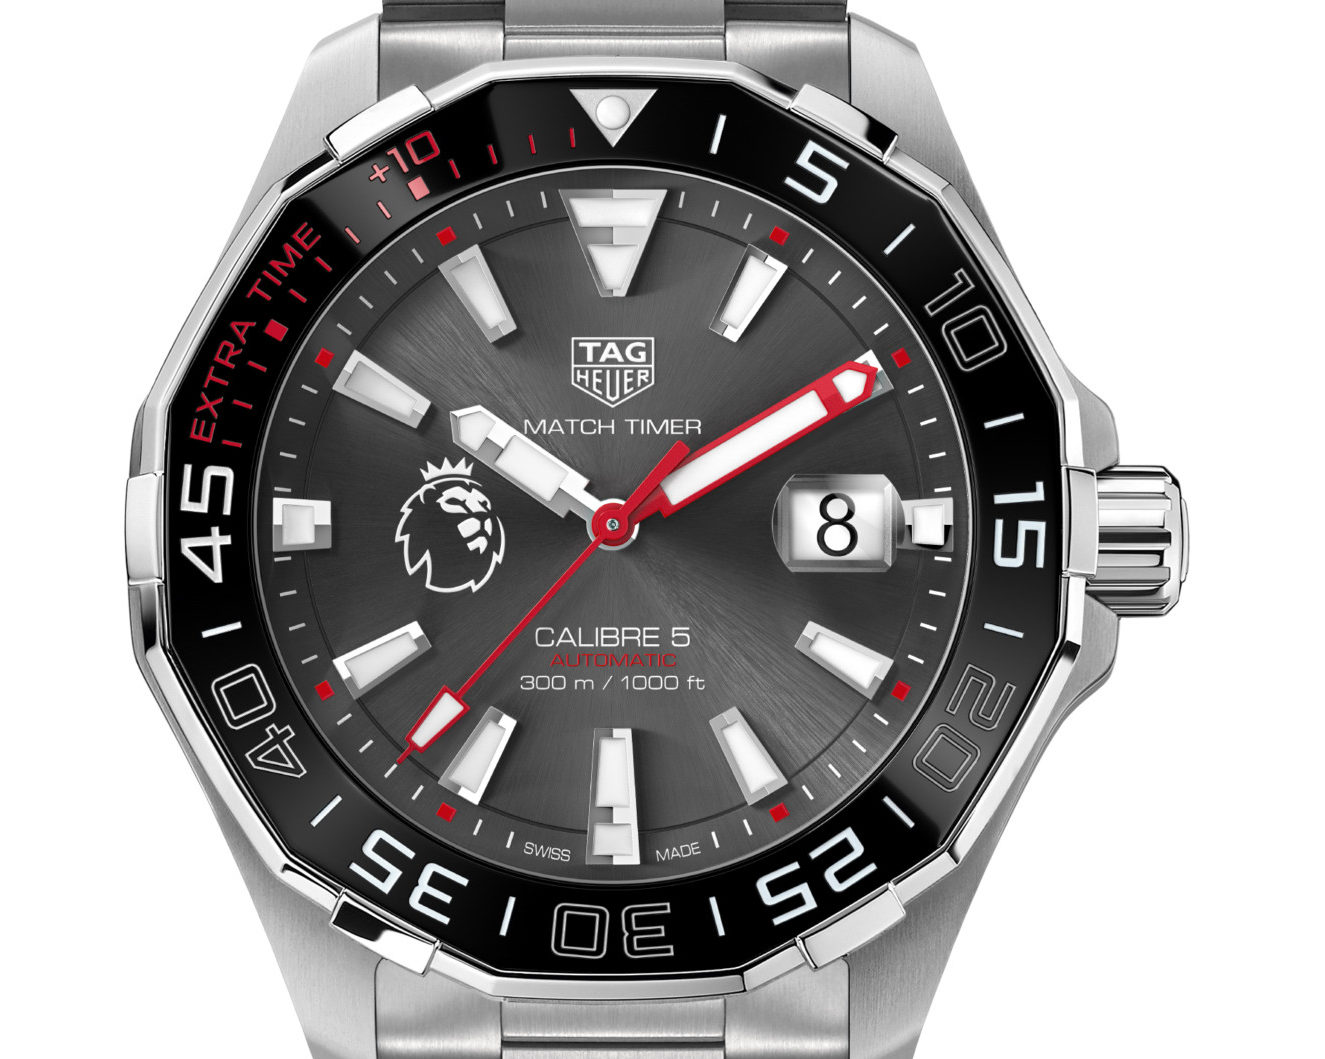 fb1cee42269 HIGHLY COMMENDED: Sports Activity Watches of the Year, TAG Heuer Aquaracer  Match Timer